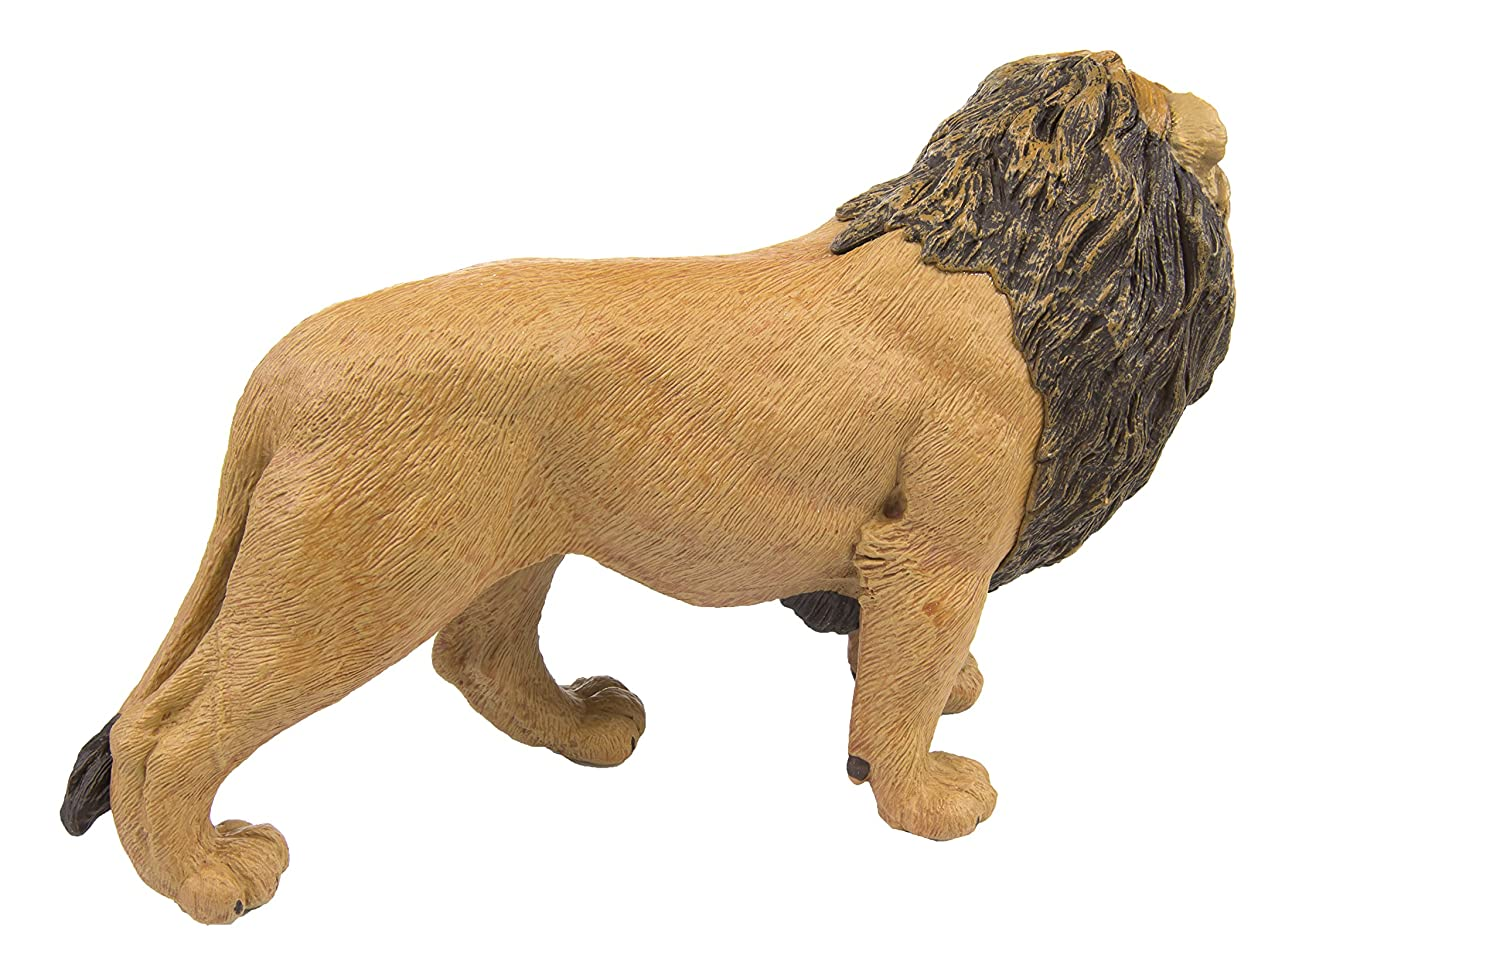 Safari Ltd Wildlife Wonders  Lion  Realistic Hand Painted Toy Figurine Model  Quality Construction from Safe and BPA Free Materials  For Ages 3 and Up  Large 111289